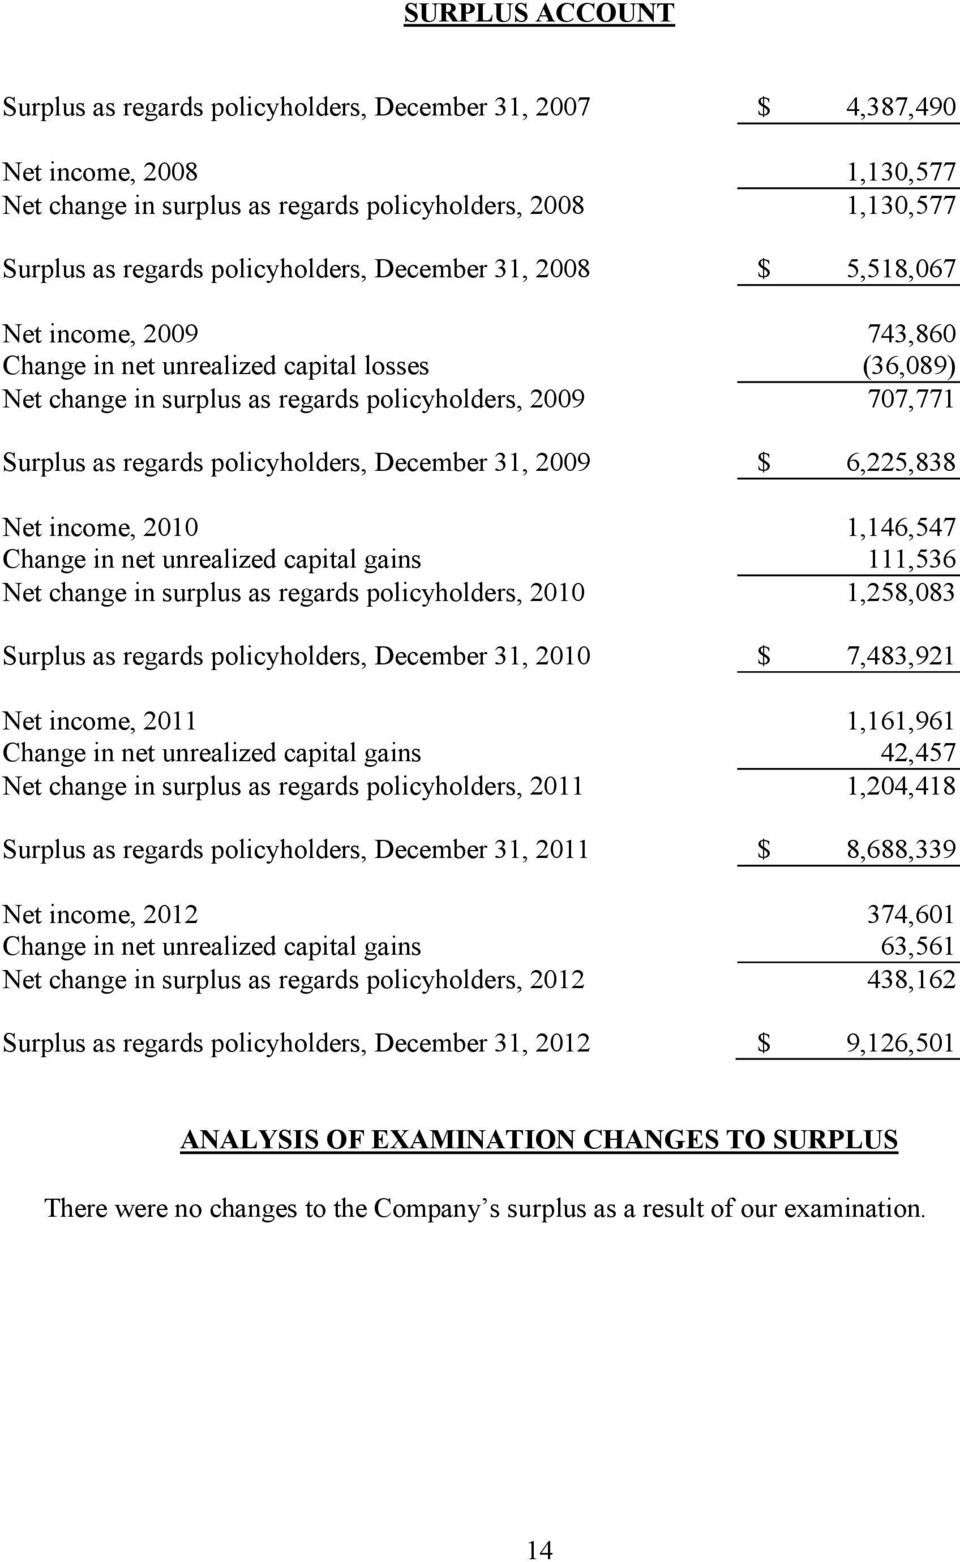 policyholders, December 31, 2009 $ 6,225,838 Net income, 2010 1,146,547 Change in net unrealized capital gains 111,536 Net change in surplus as regards policyholders, 2010 1,258,083 Surplus as